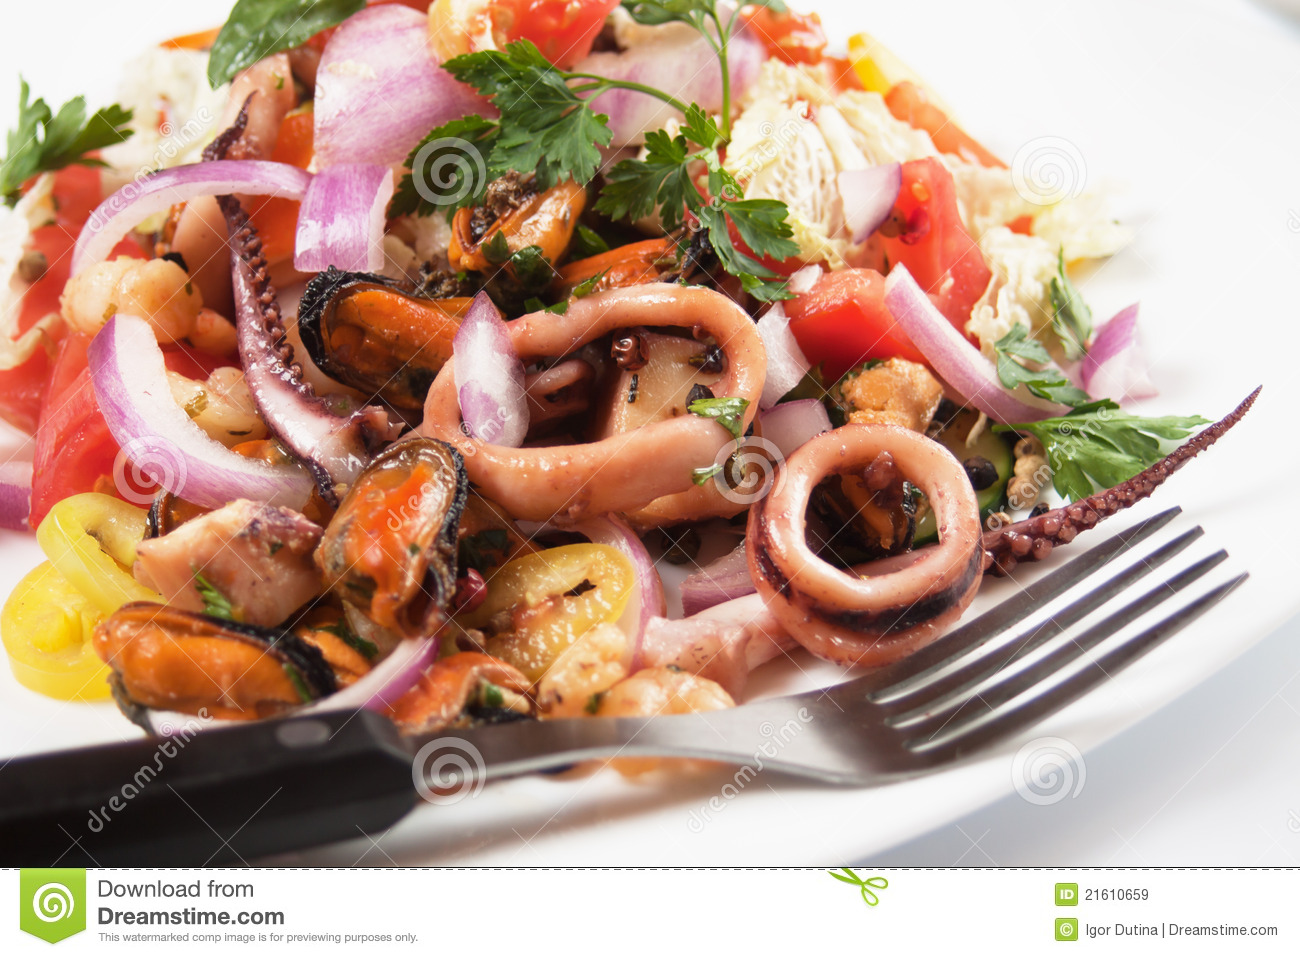 Seafood salad with squid rings, mussel, shrimp and vegetables.